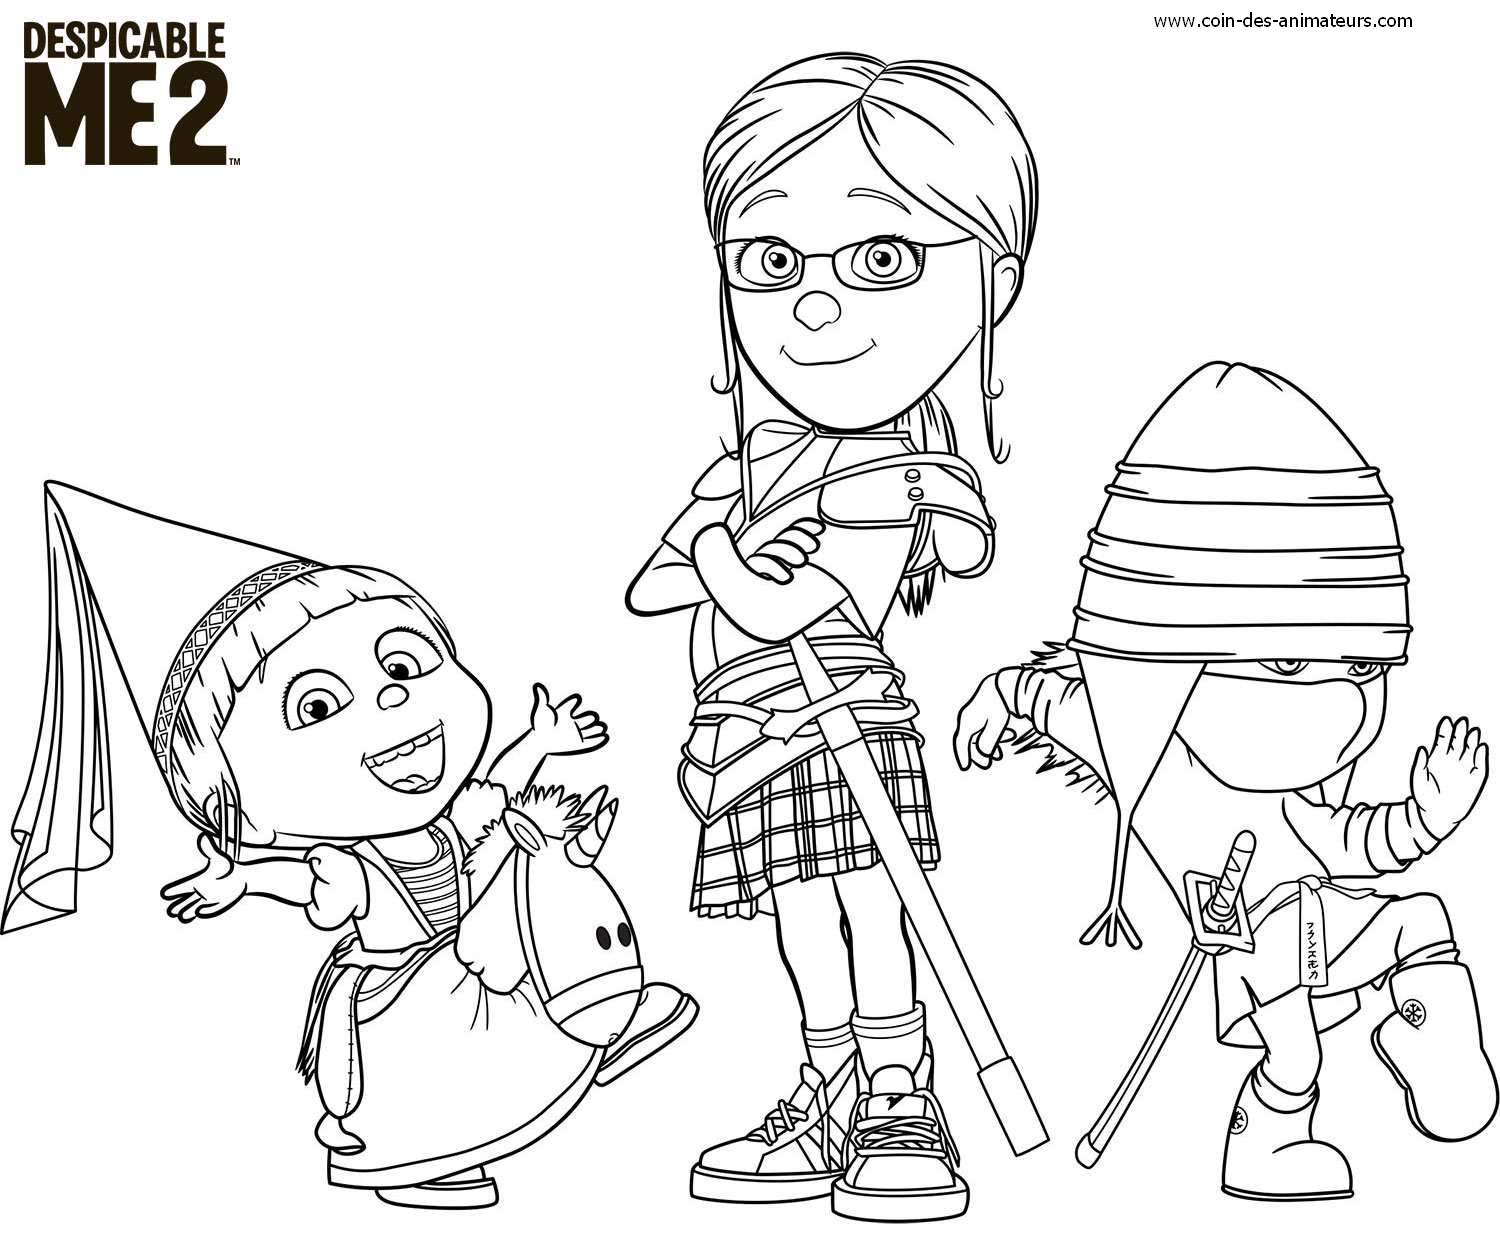 coloring pages despicable me - coloriages minions moi moche et m chant le coin des